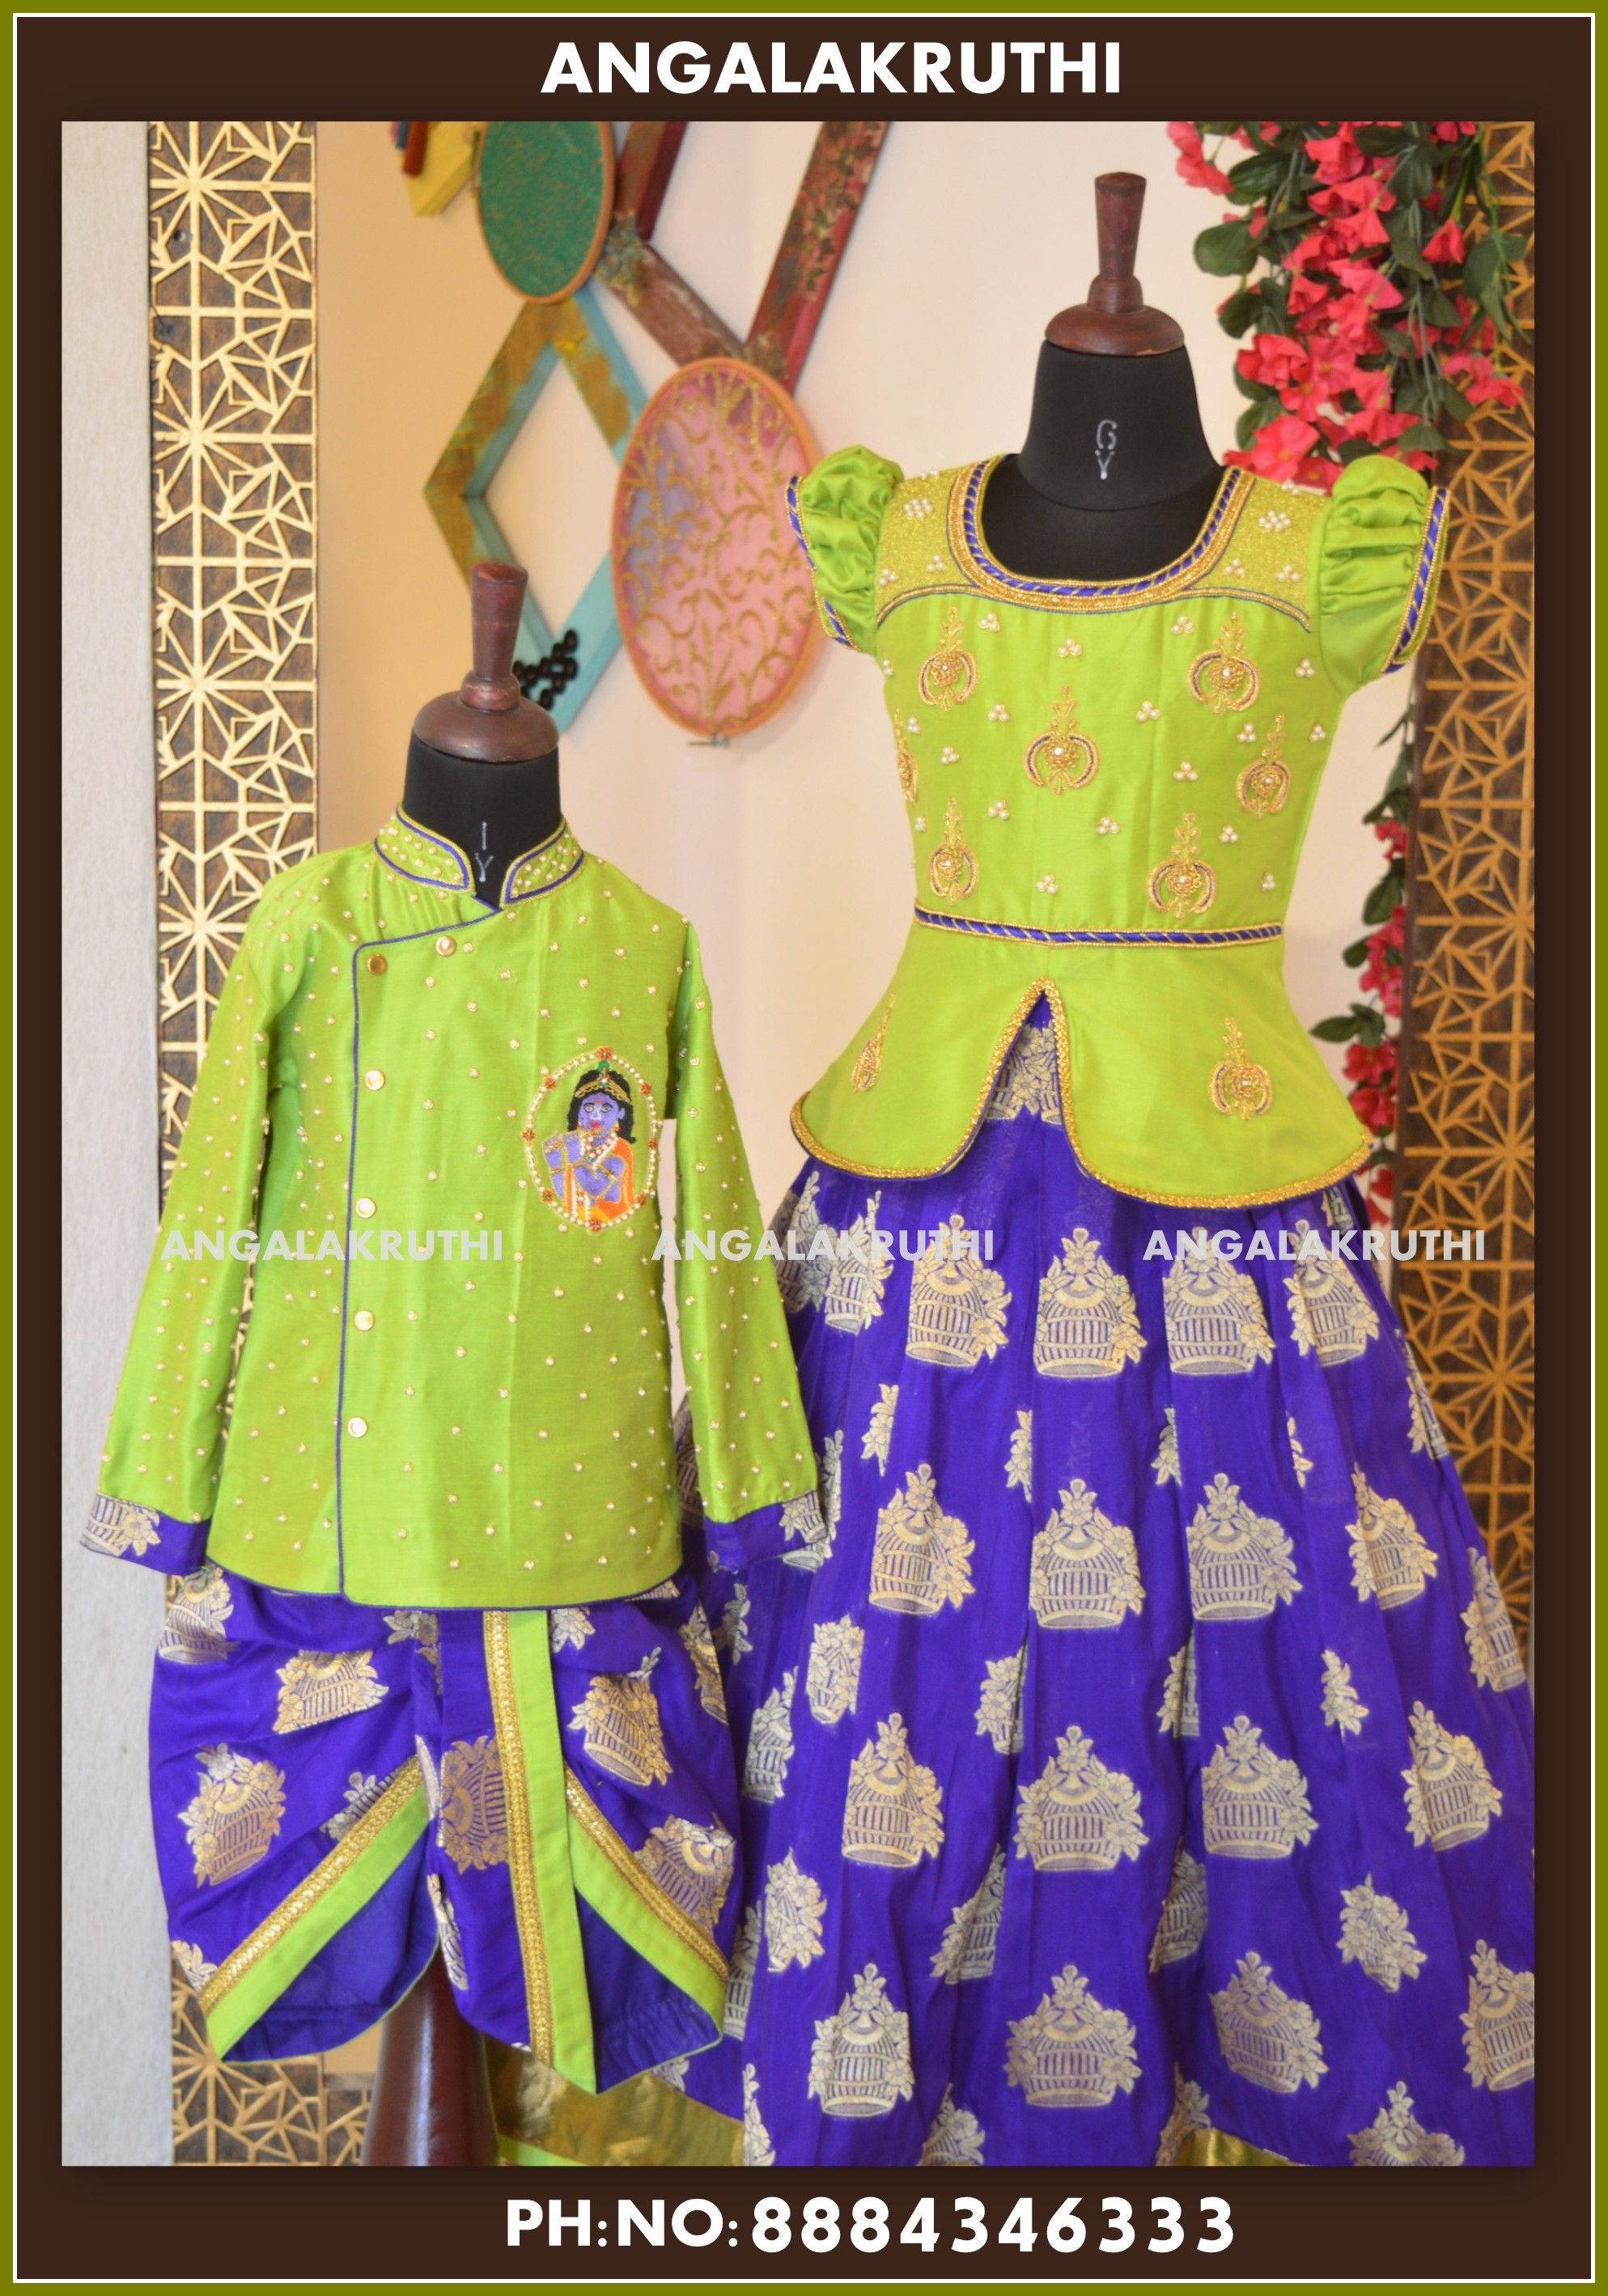 0490953688 Twins matching dress designs by Angalakruthi boutique in bangalore brother  and sister matching dress designs in india by Angalakruthi boutique  tradational ...